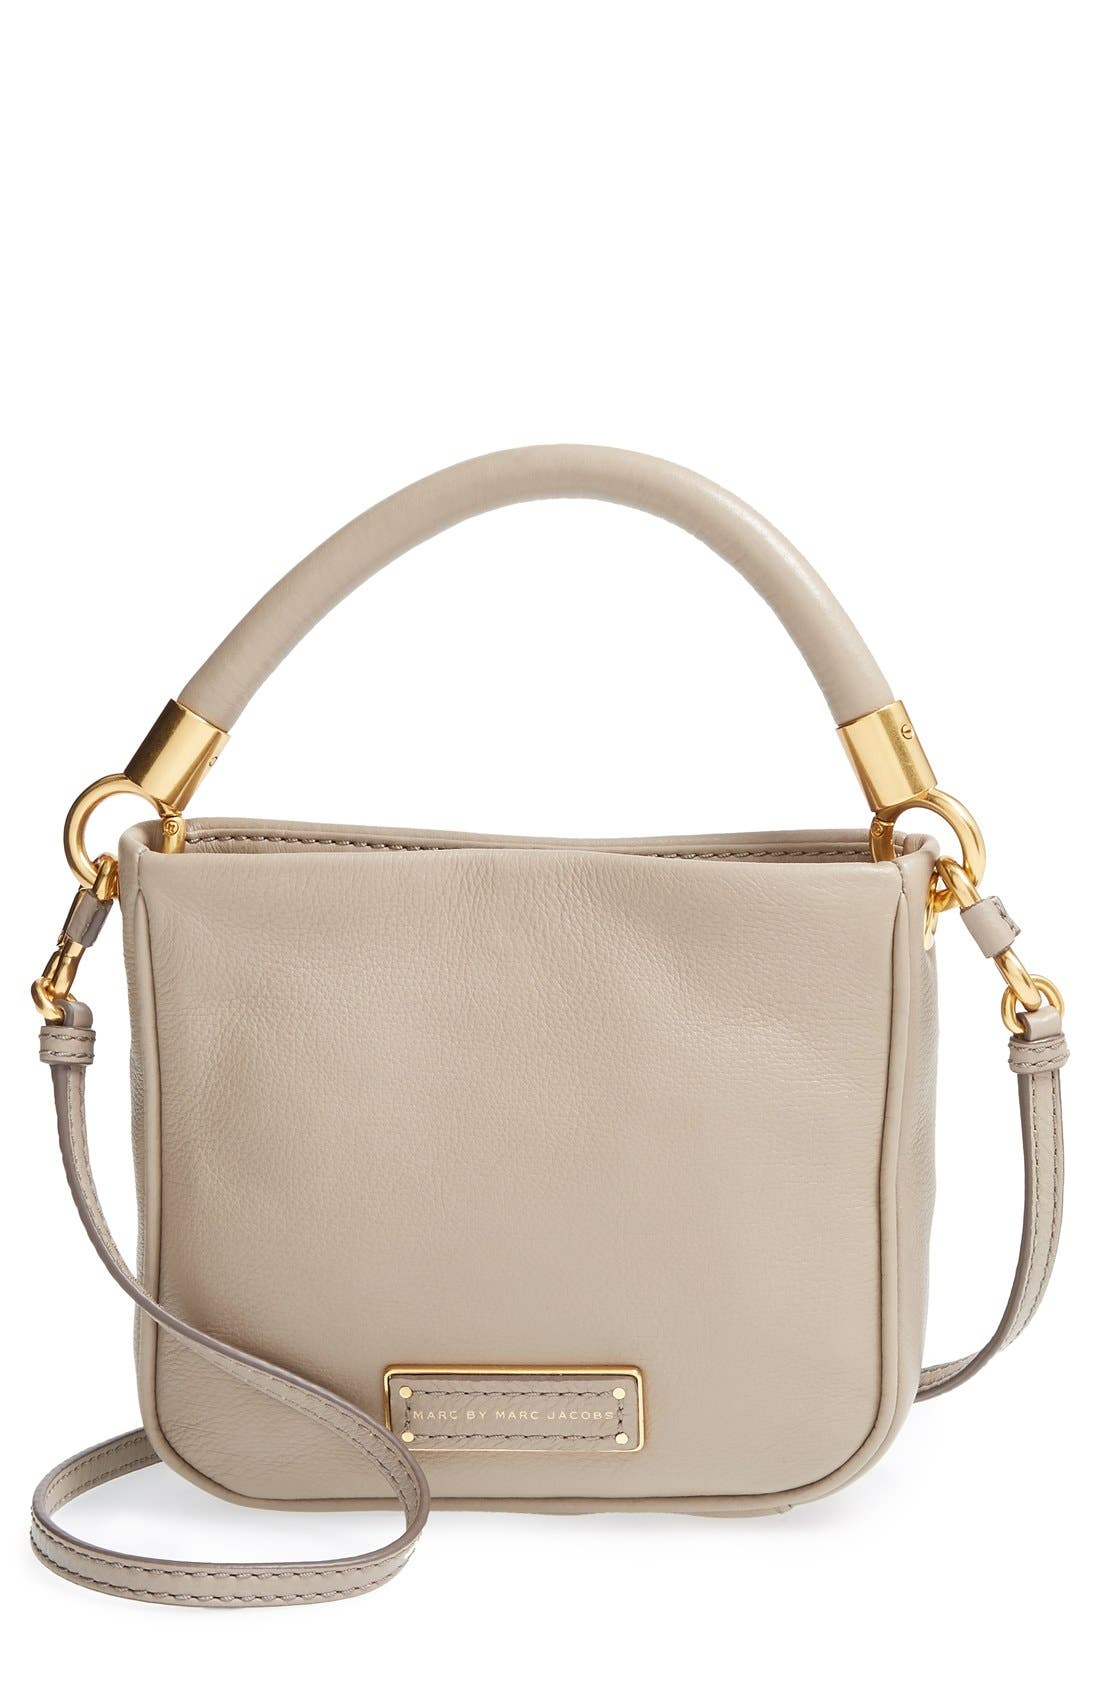 Main Image - MARC BY MARC JACOBS 'Too Hot to Handle' Crossbody Bag